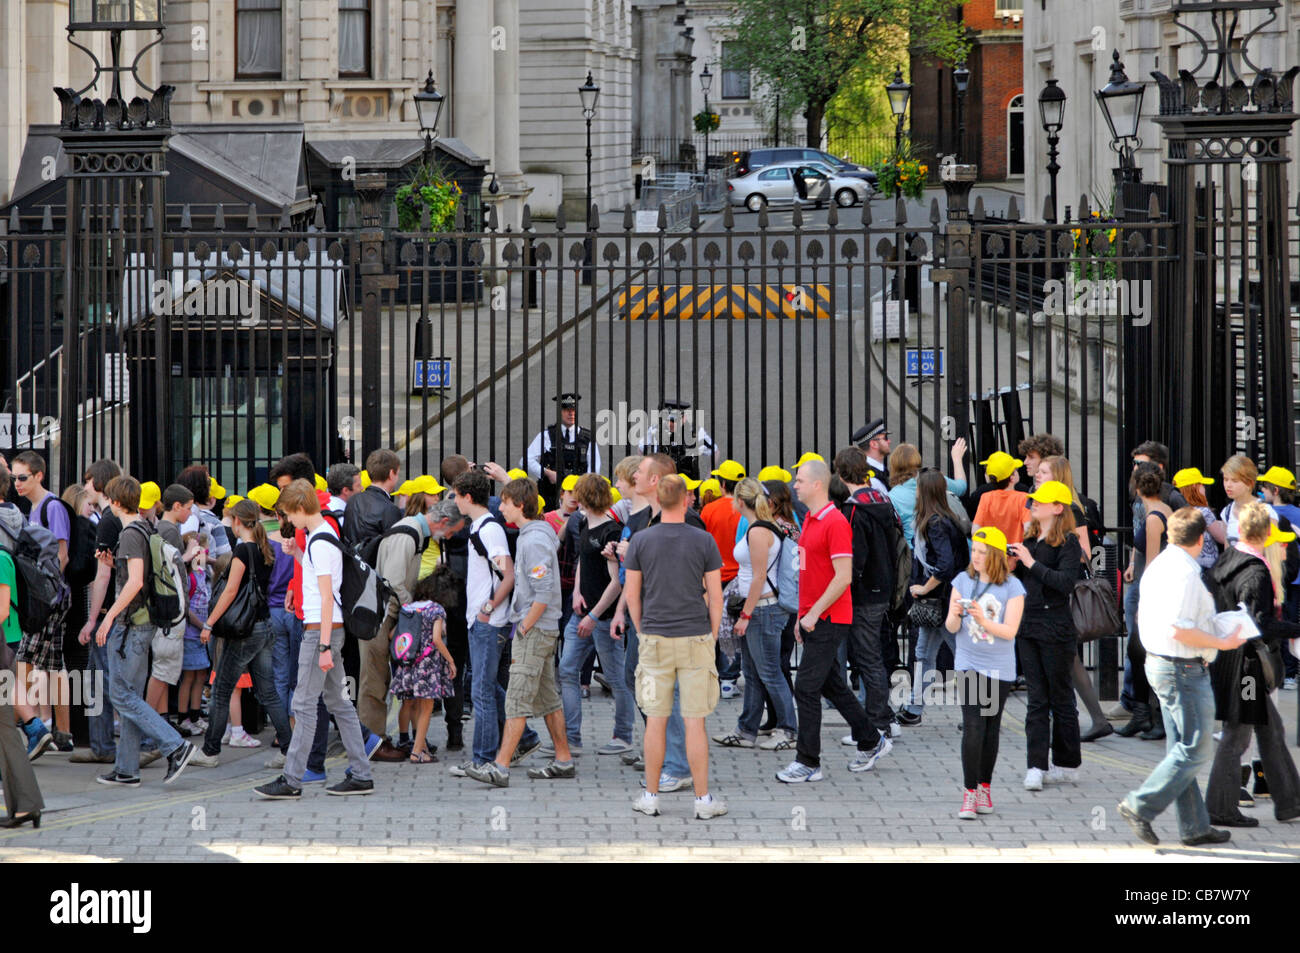 Armed London Metropolitan police officers behind security gate protect access to10 Downing Street tourists & group Stock Photo